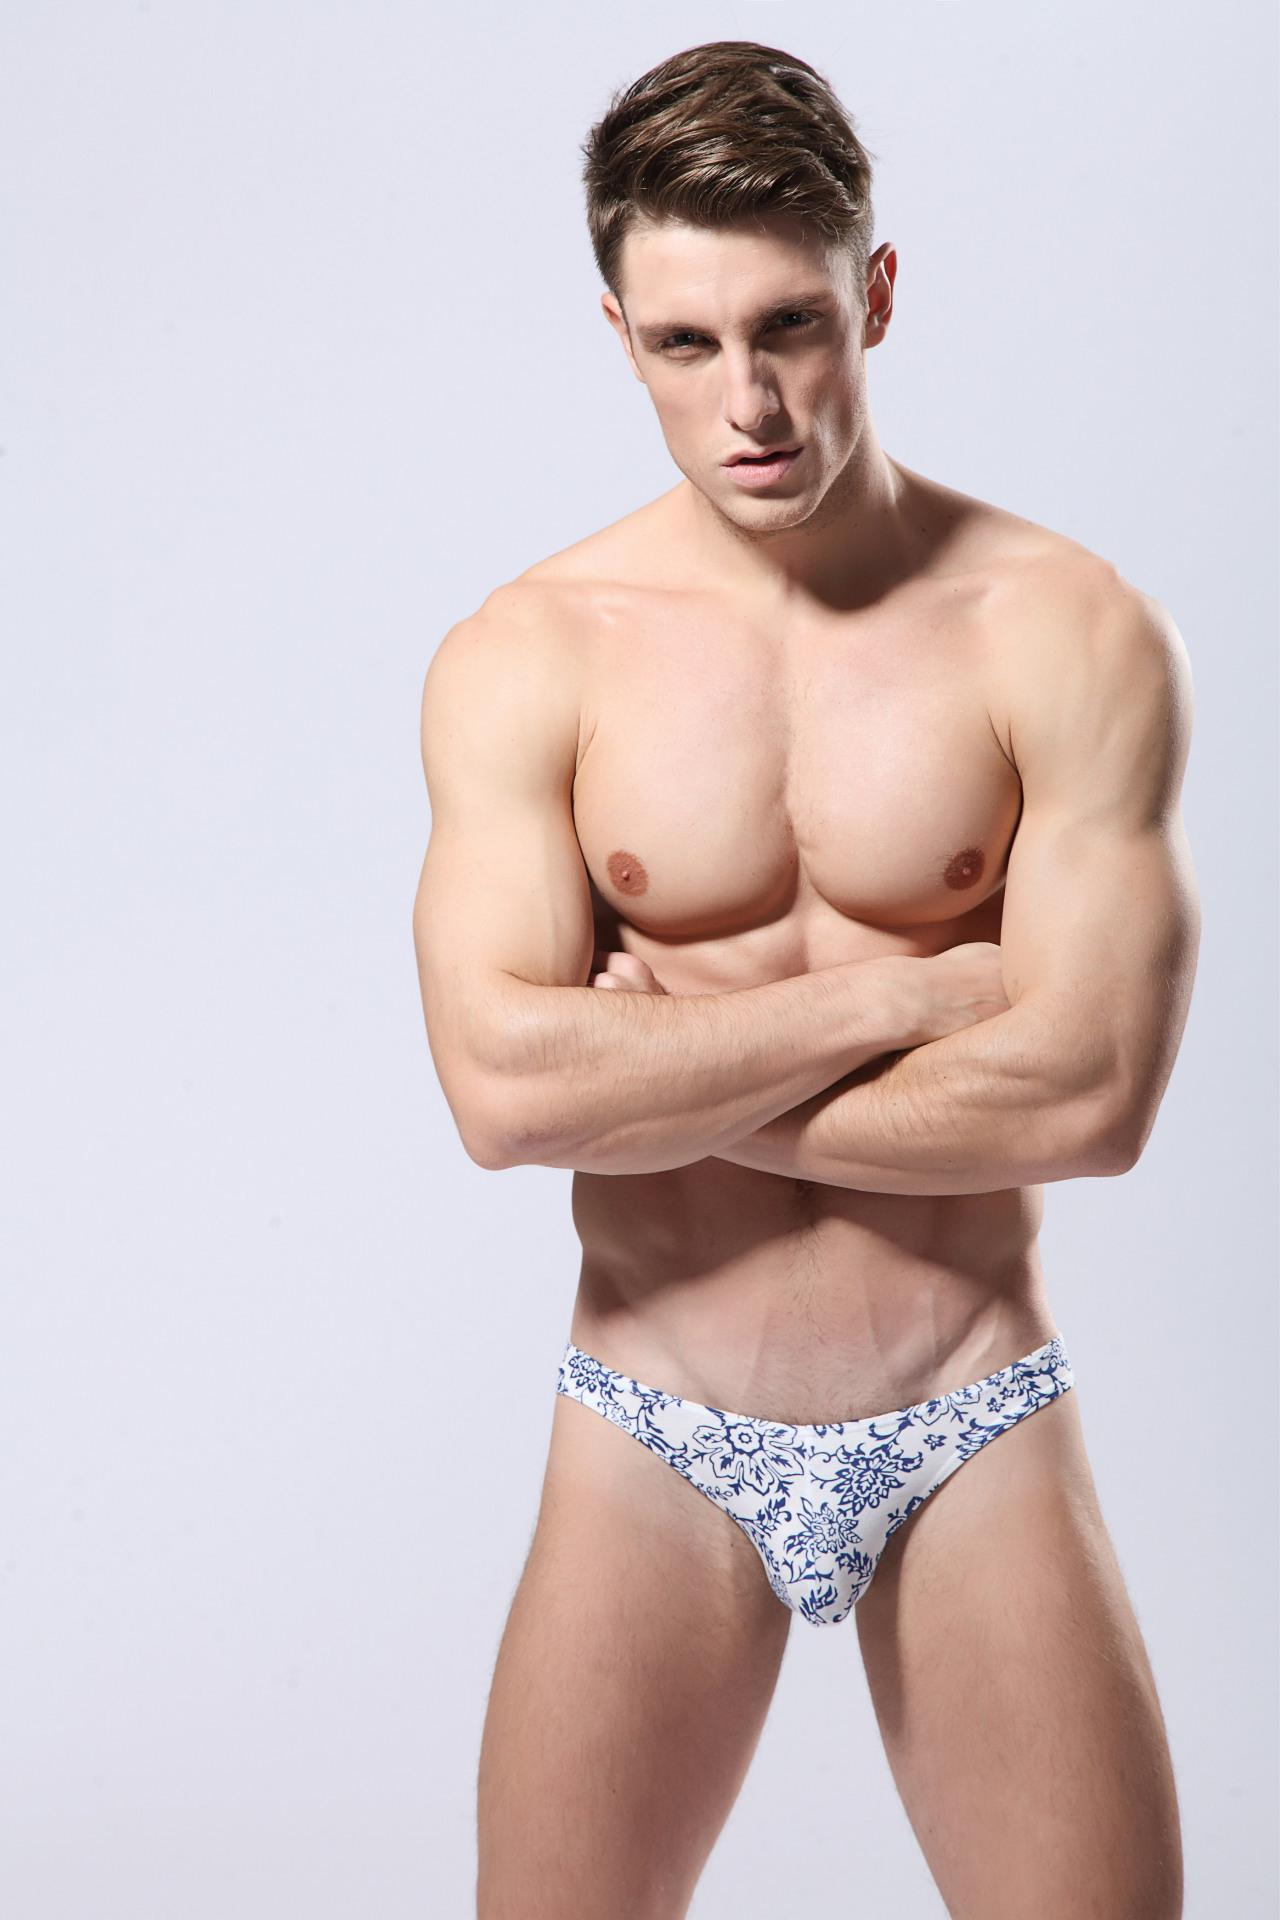 Oct 02,  · The best underwear for men that we found in , including long johns, boxer briefs, boxer shorts, and white briefs. From long johns and boxer briefs to .